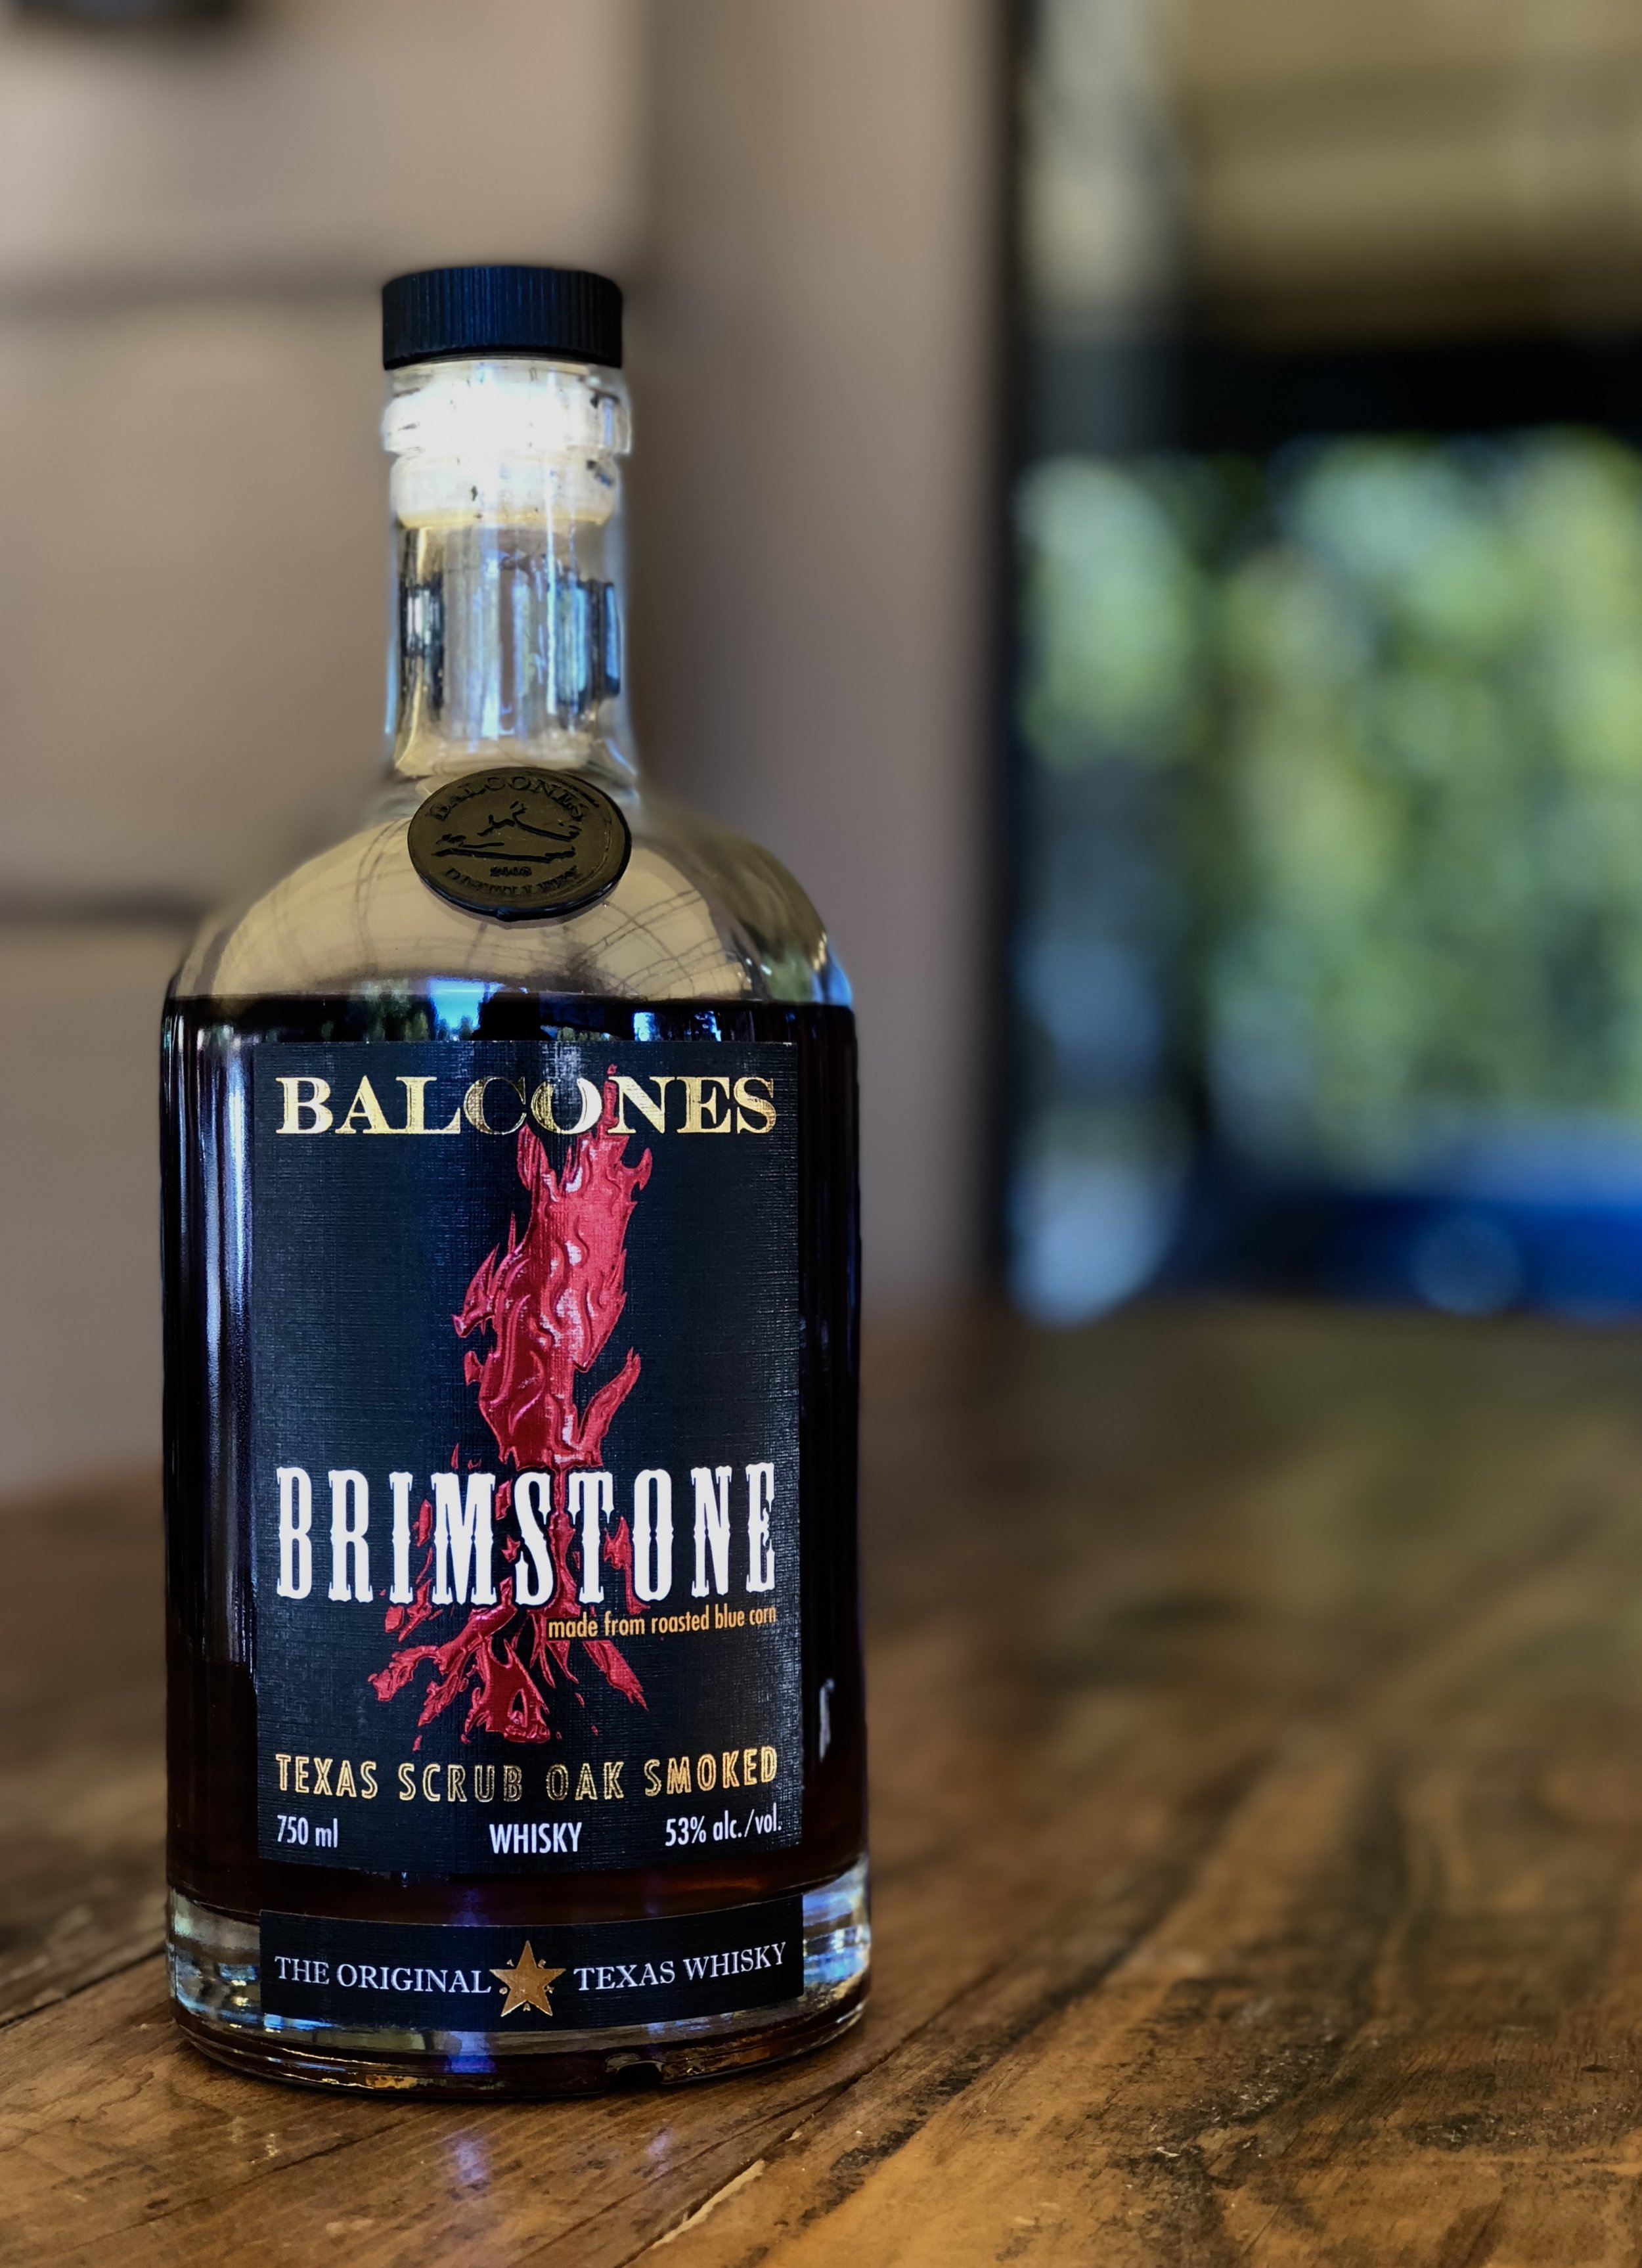 """This Whiskey Wednesday we have a bottle that tops our Distinct Whiskey section.      Balcones Distilling's Brimstone whisky is a Texas Scrub Oak Smoked Whisky made from roasted blue corn.       """"This one-of-a-kind whisky is smoked with sun-baked Texas scrub oak using our own secret process.  The result is a whisky full of fresh, youthful corn and light fruit notes married with a bold smokiness.  Whether you like smoky whiskies, or just have a penchant for big, new flavors, Brimstone is sure to be a memorable pour.  Aromas of masa, Texas campfire and powdered sugar backed by stone fruit, peppery spice, and mint. Bold yet balanced, Brimstone is yet another Texas original from Balcones.""""  -Balcones     Whiskey Wednesday offers 50% off all whiskeys $10/oz and under all Wednesday. Cheers!"""